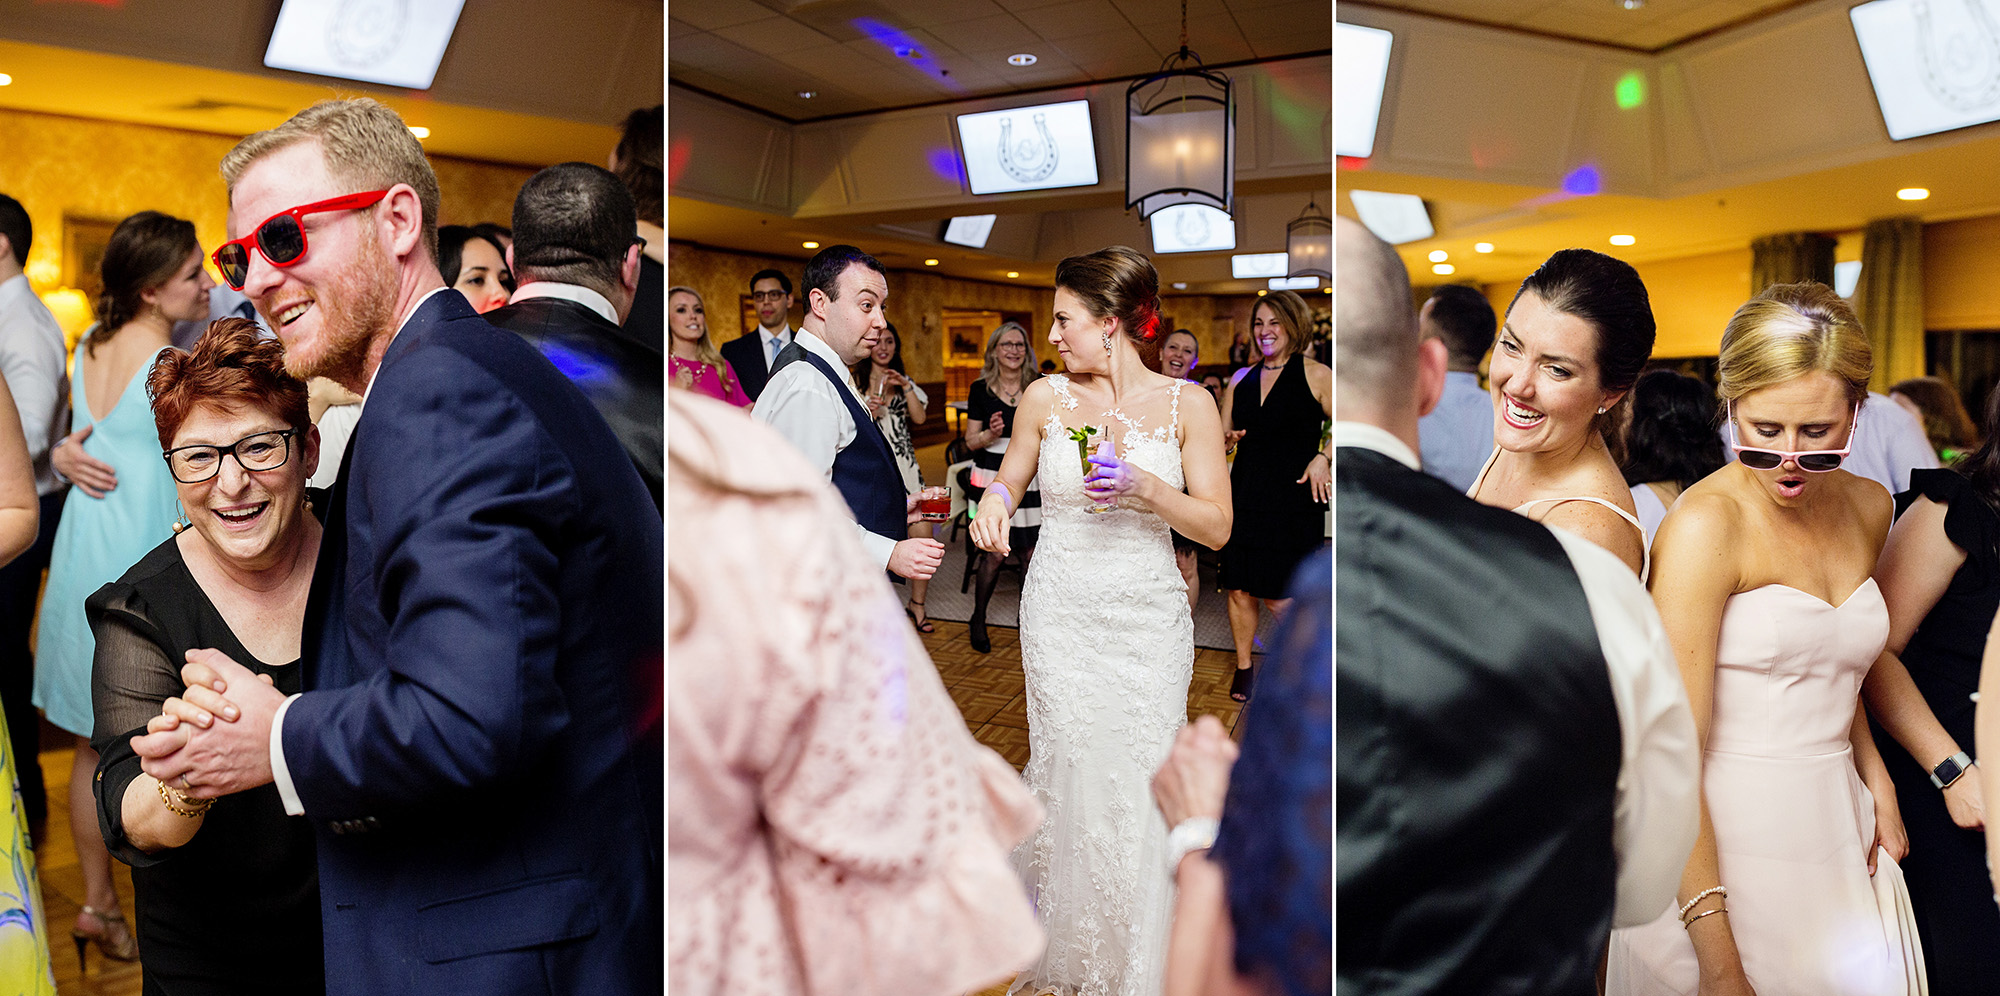 Seriously_Sabrina_Photography_Lexington_Kentucky_Downtown_Keeneland_Clubhouse_Wedding_Spitzer_137.jpg